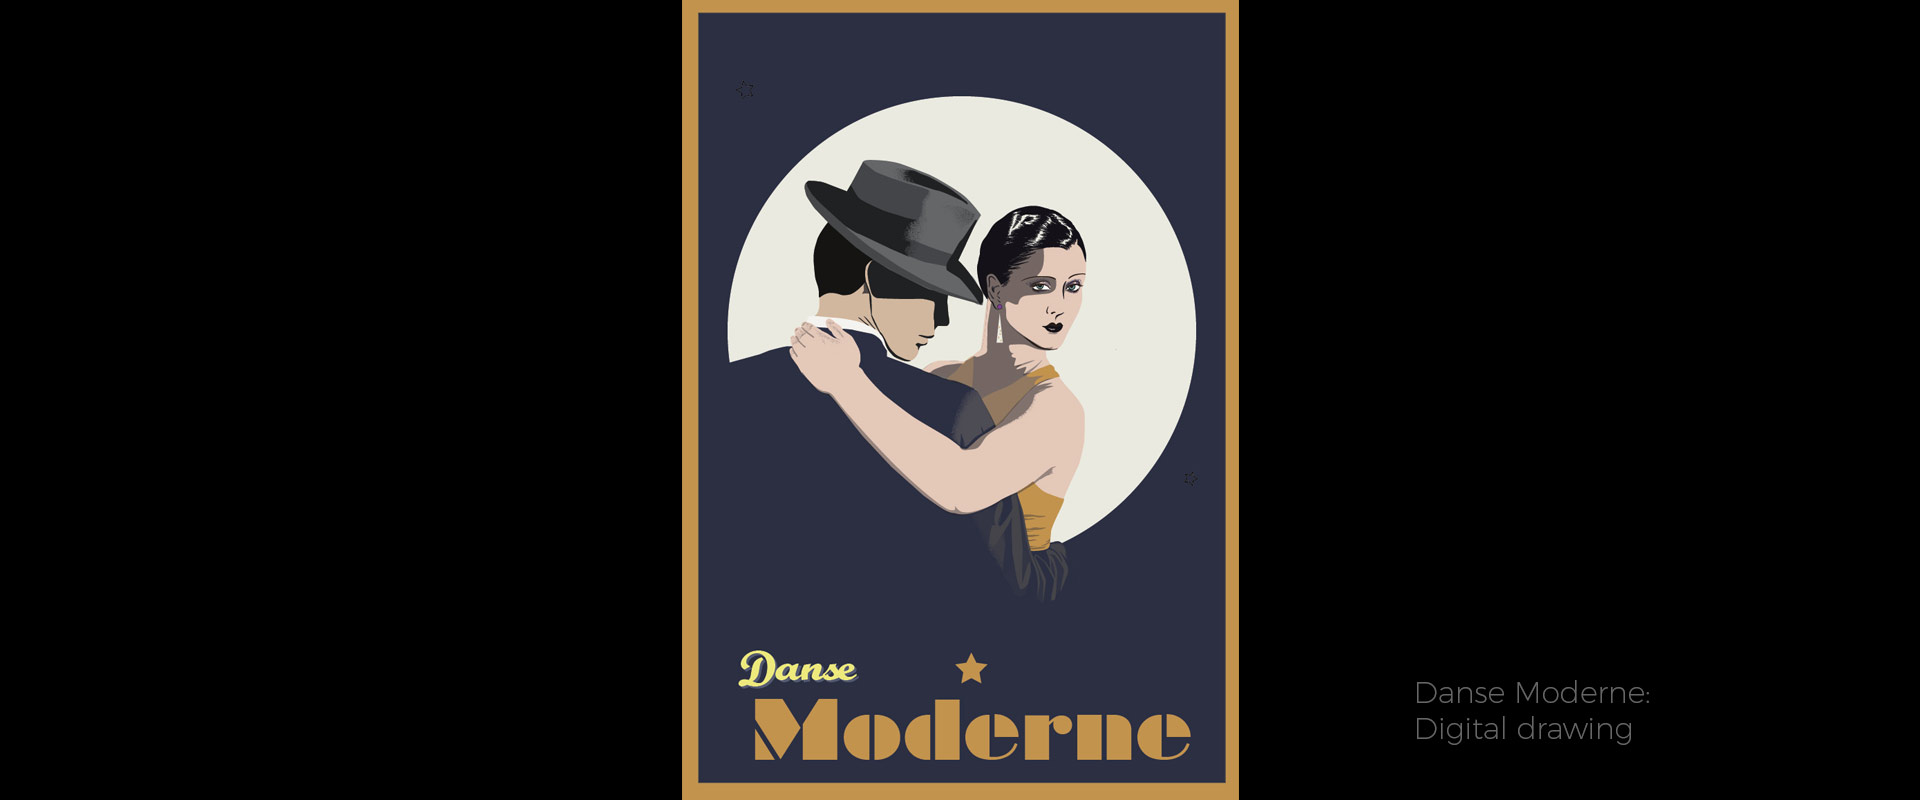 Danse Moderne, illustration by David Hamley